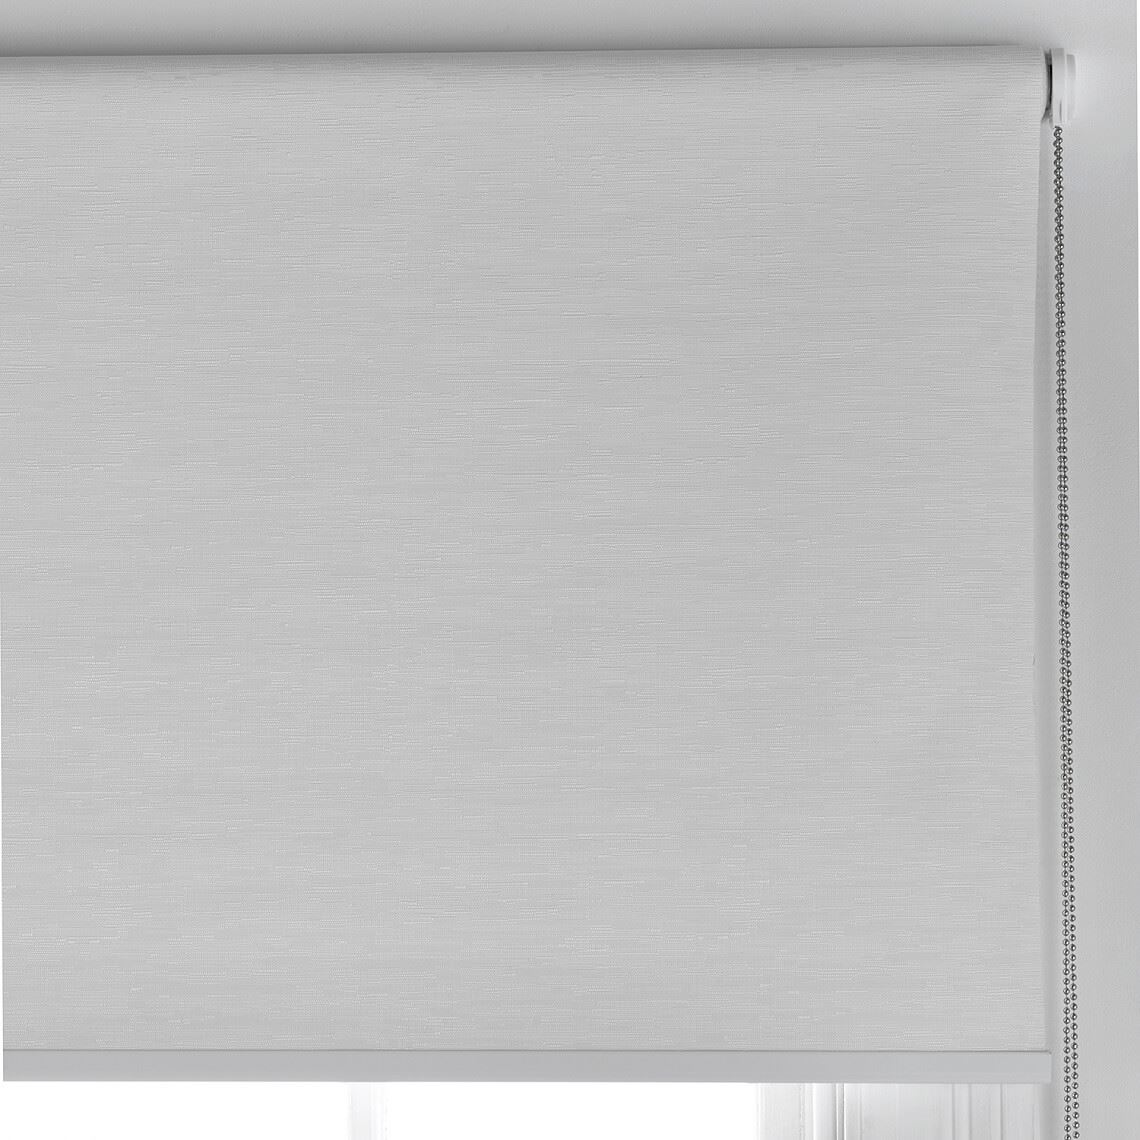 Ashcroft Blockout Roller Blind Size W 90cm x D 0cm x H 210cm in Eggshell 100% Polyester Freedom by Freedom, a Curtains for sale on Style Sourcebook